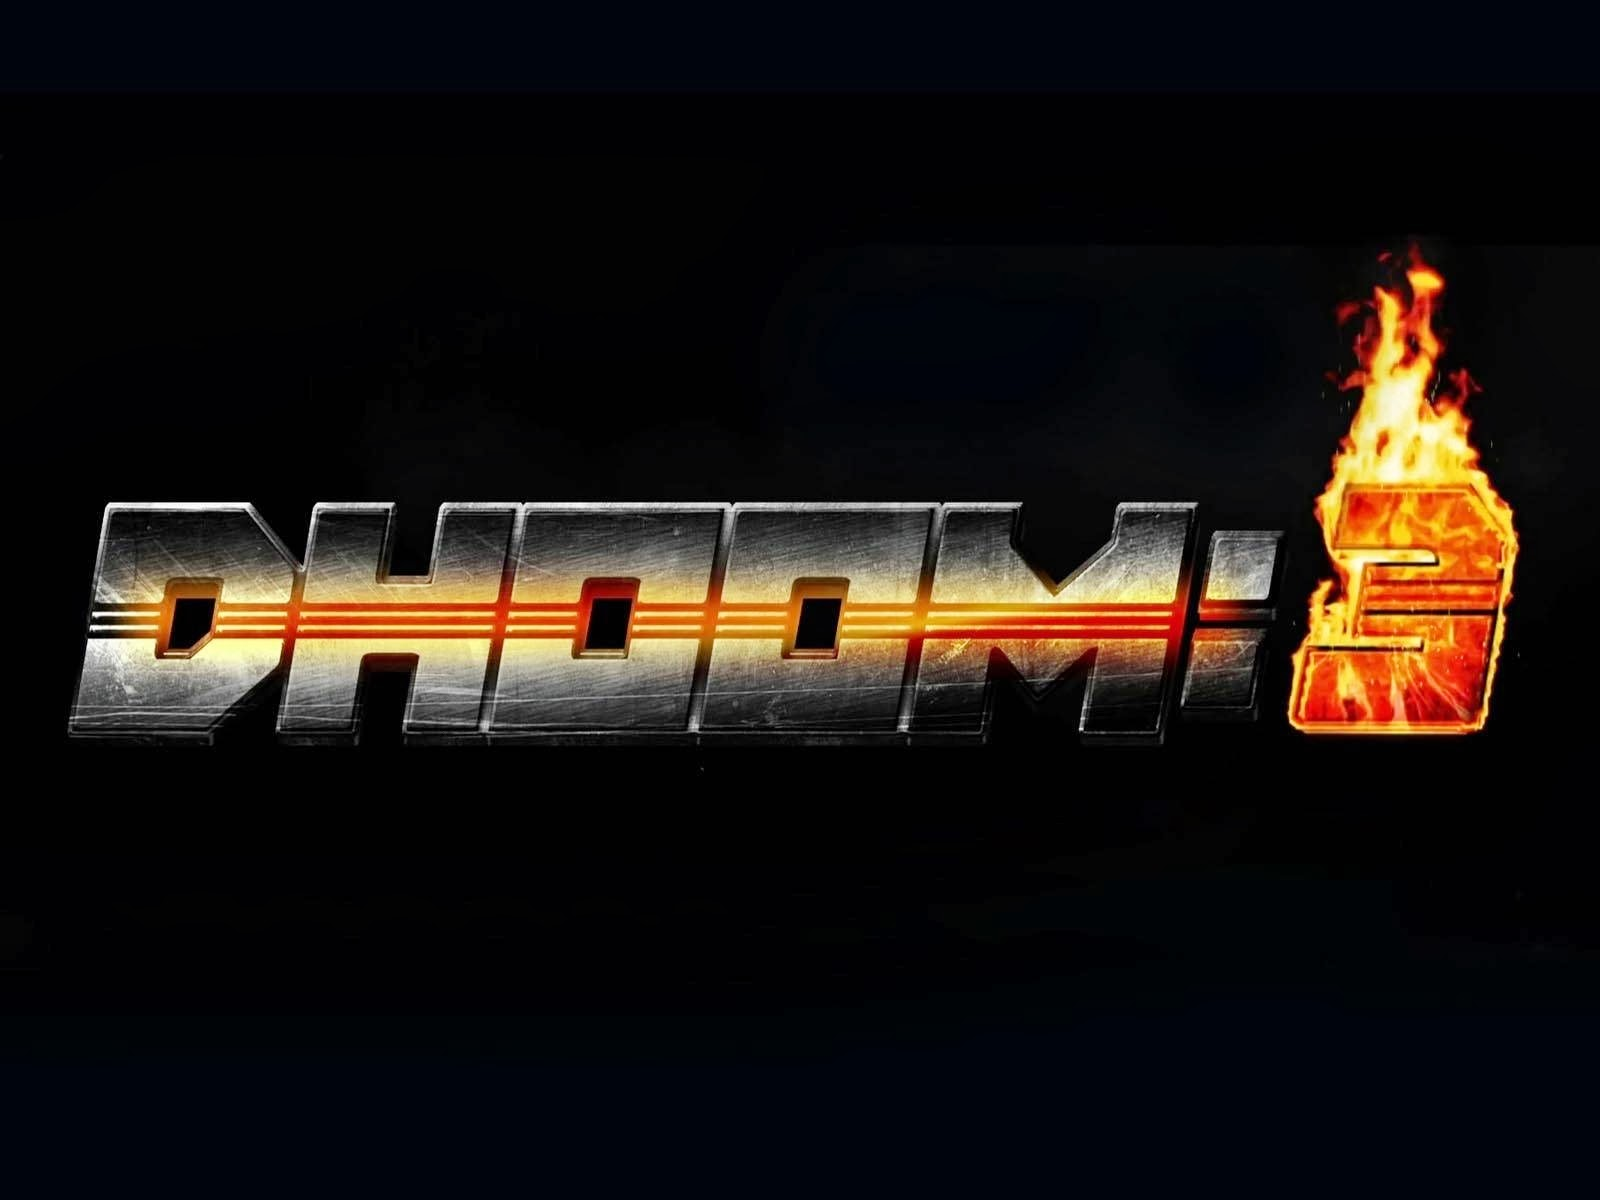 dhoom 3 wallpapers - photo #22